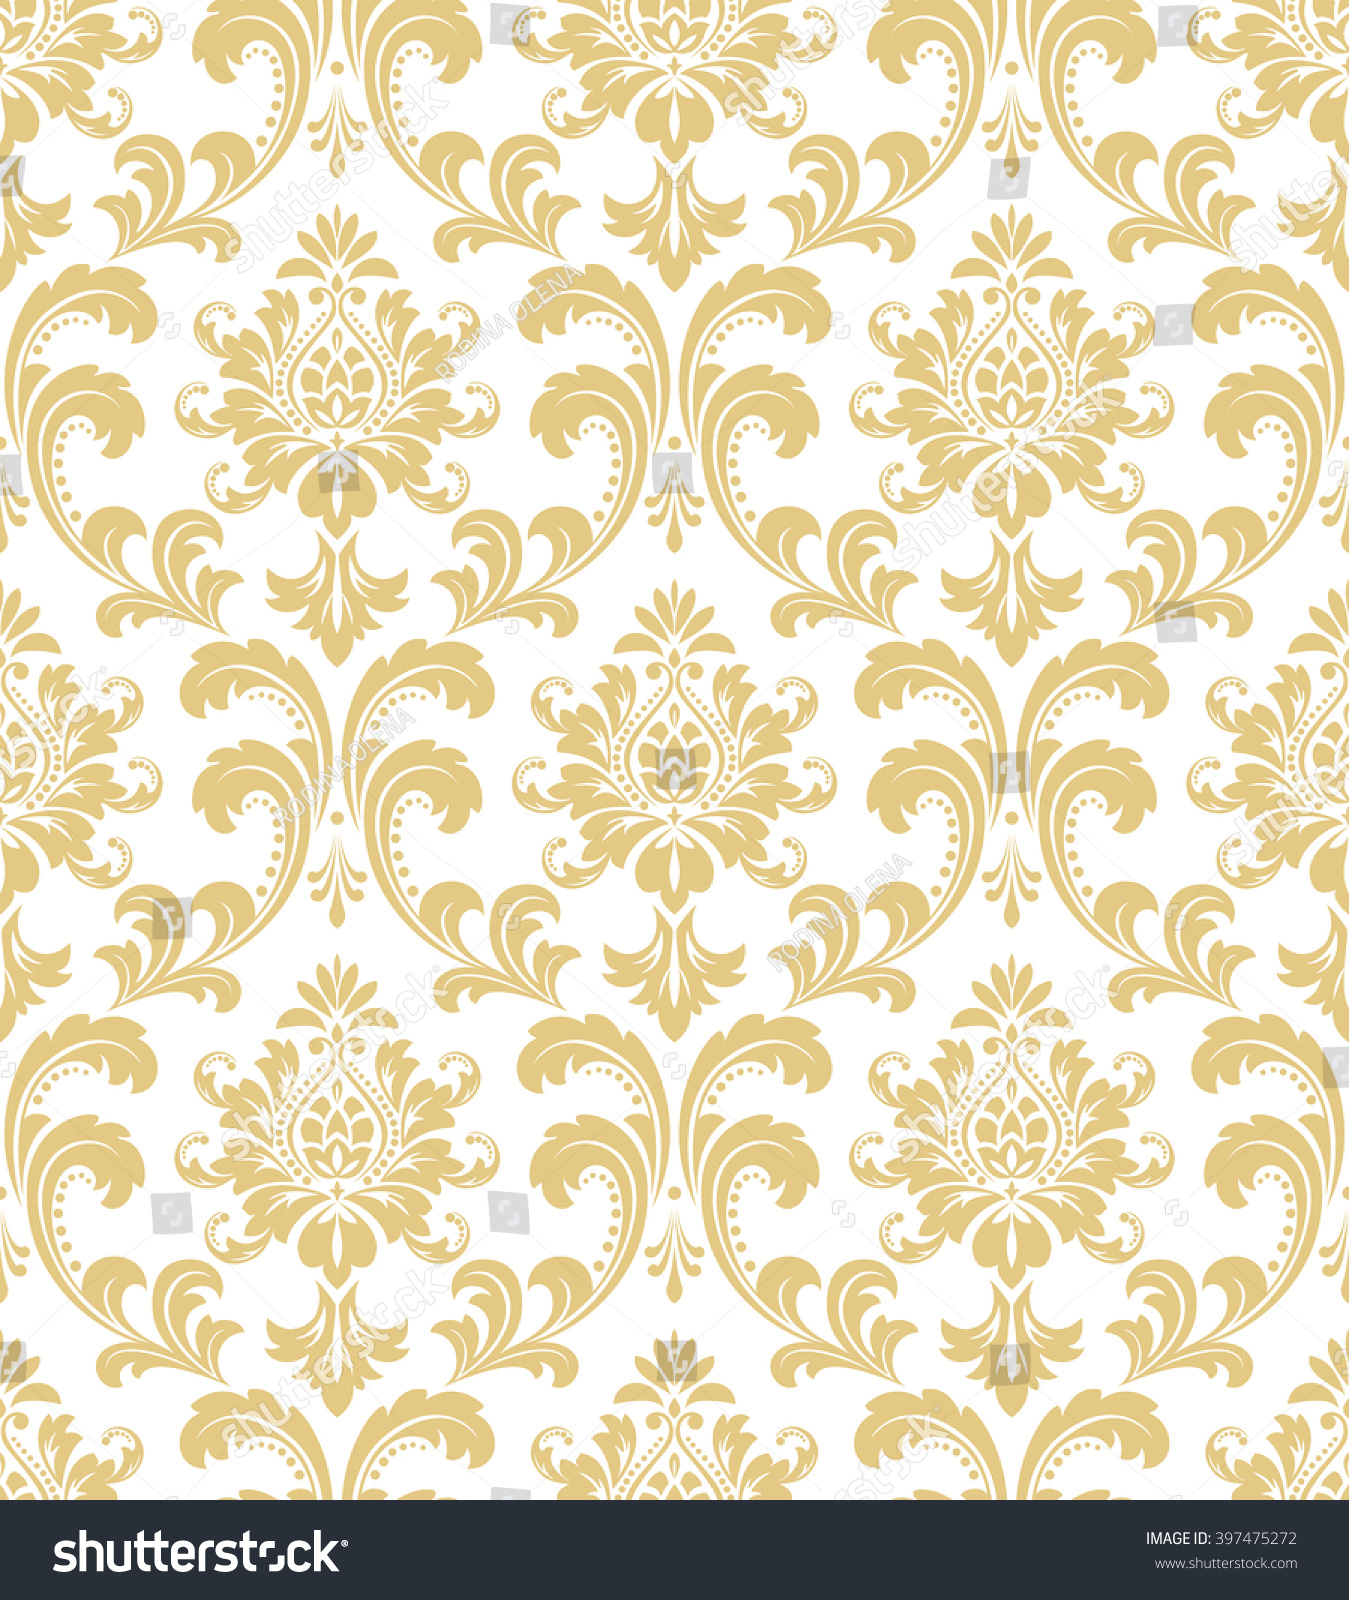 white and gold floral wallpaper - photo #23